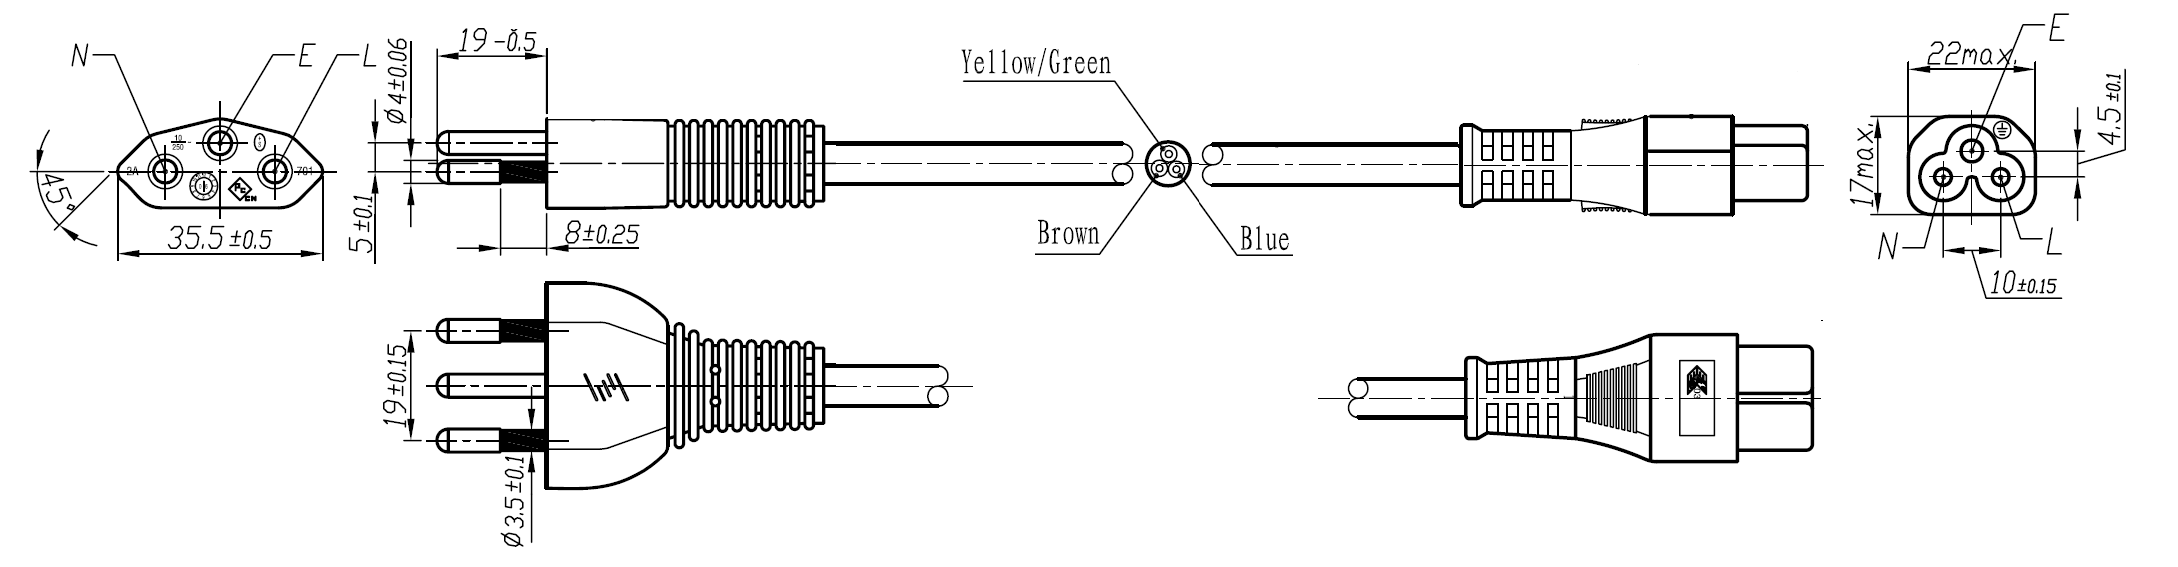 Switzerland Power Cords Mega Electronics Inc 3 Prong Cable Wiring Diagram The 210 C5 Is A Cord Used In With Plug H05vvf3g075mm To Iec 60320 Connector Rated At 25a 250v And Carries Sev